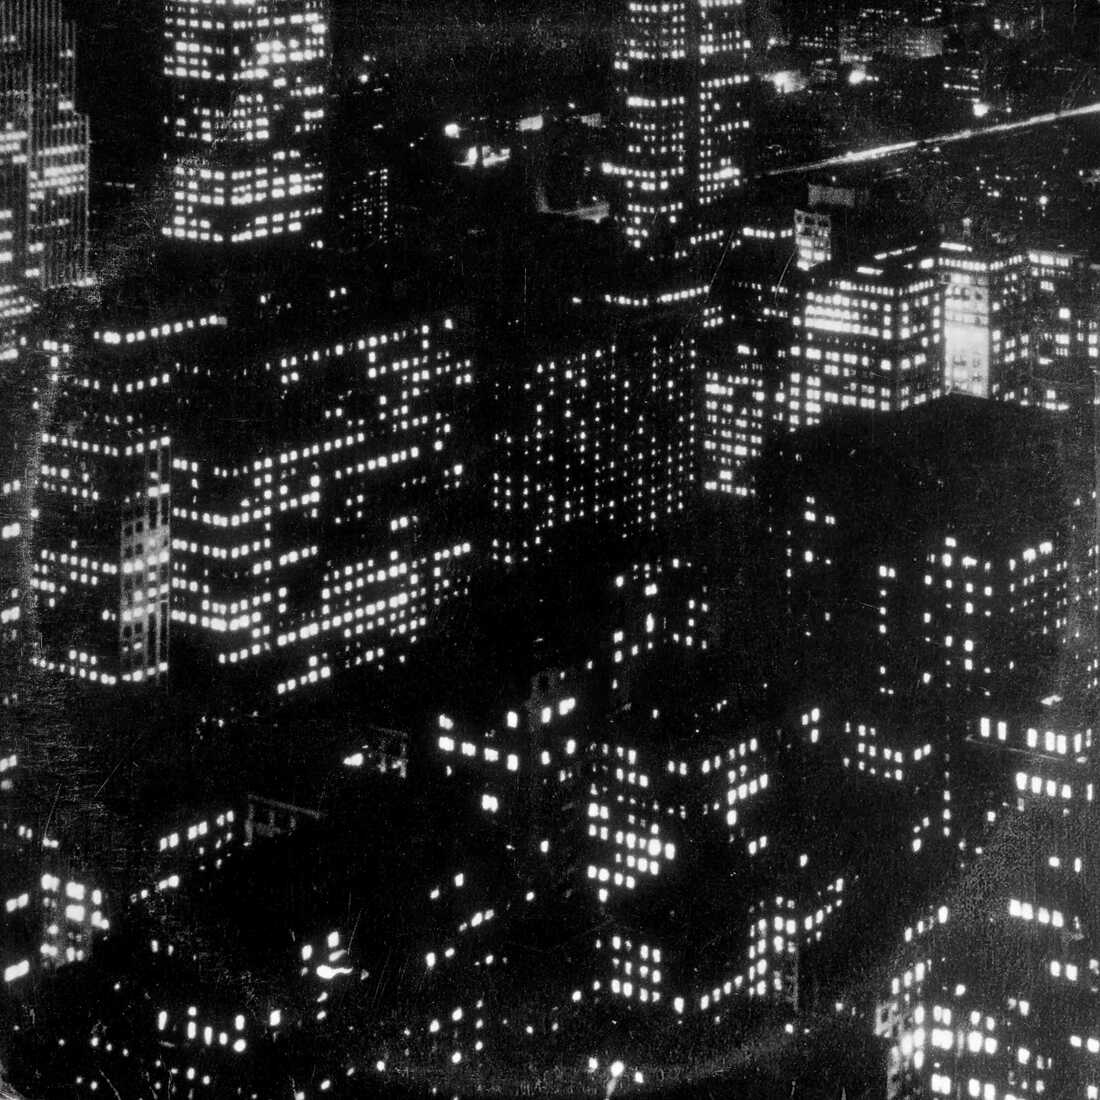 Timber Timbre: Sincerely, Future Pollution